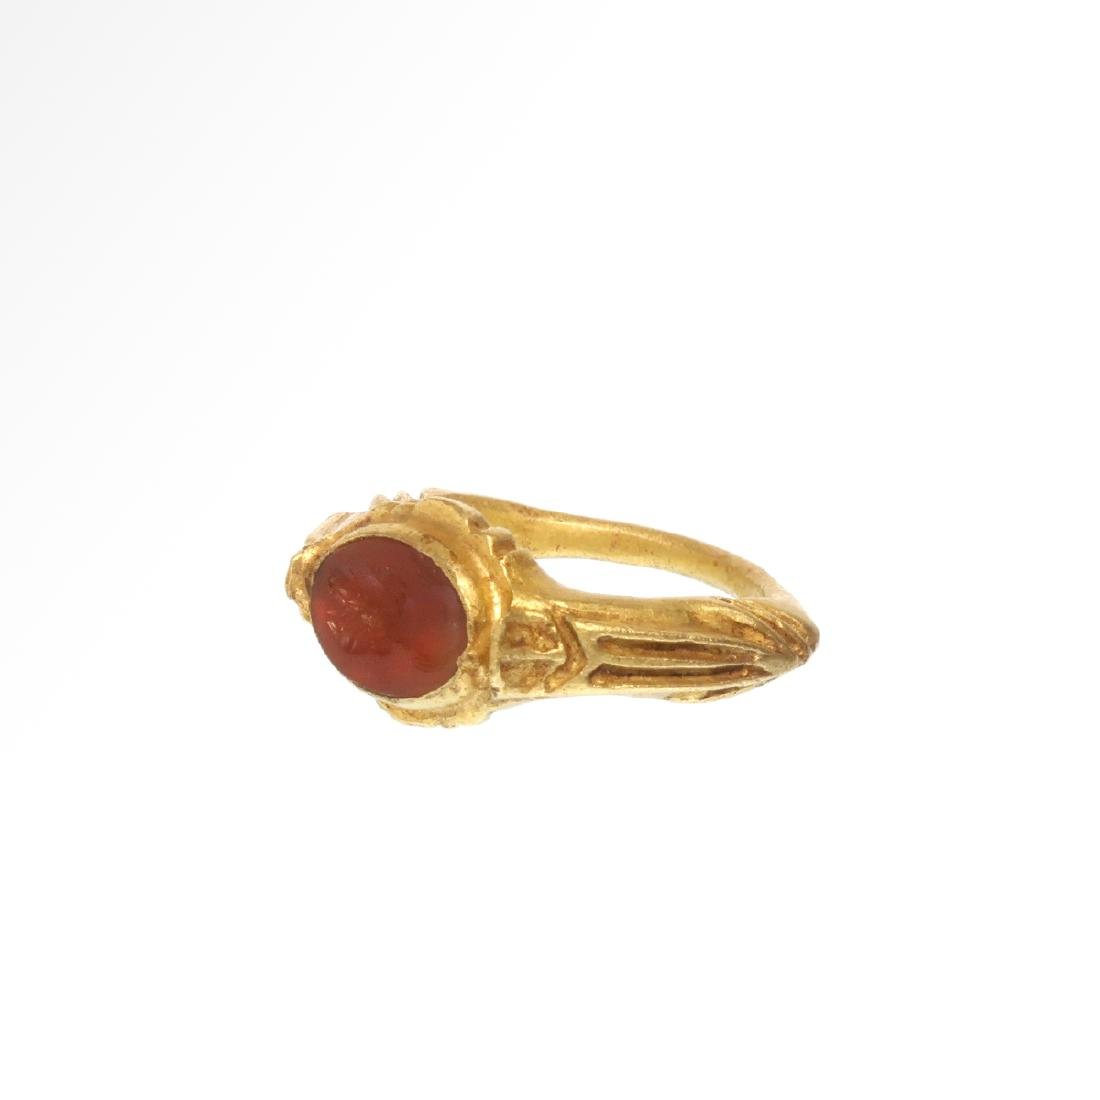 Roman Gold Ring with Cornelian Intaglio Engraved with - 4